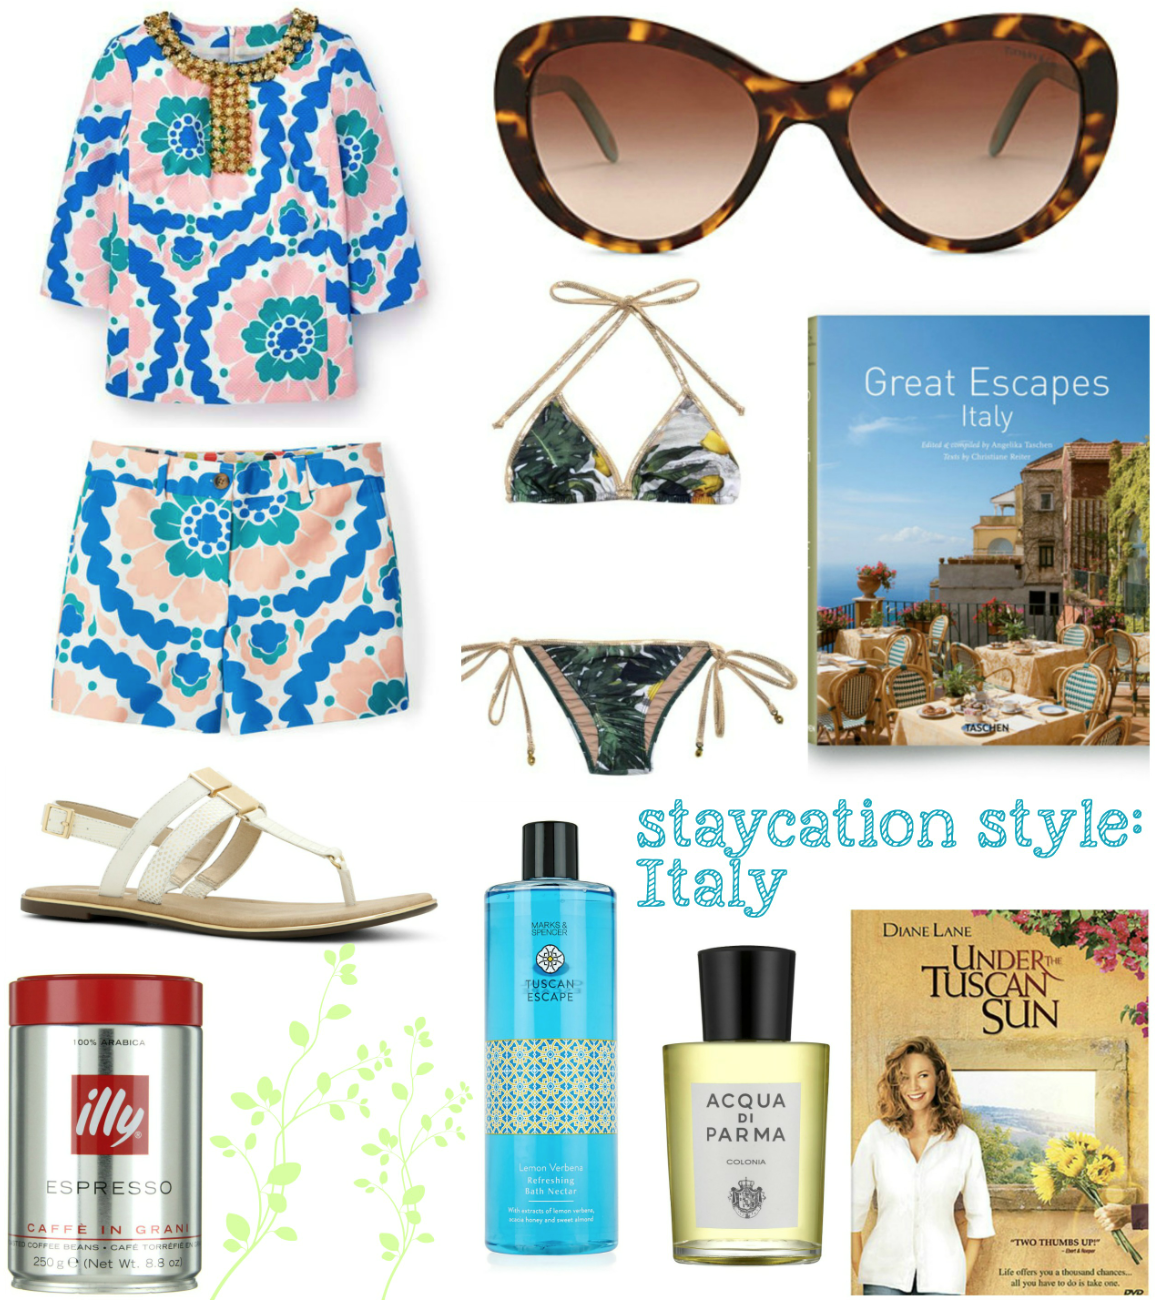 mamasVIB | V. I. BABYMAMAS: How to take a stylish holiday …at HOME! Part 2 | holiday at home | stay cation | holiday style | holiday fashion | shopping | fashion | holiday | vacation | illy coffee | italy | italian holiday | italian style | italy fashion | mamasvib | lemon print bikini | boden | boden kaftan | capri | stylish | tuscan holiday | under the tuscan sun | sandals | styleih | italy | aqua de parma | great escape italy | books | holiday books | holiday style | stay at home holiday | faction  at home | sunglasses | oversized sunglasses | marks and spencer | boden summer | amara